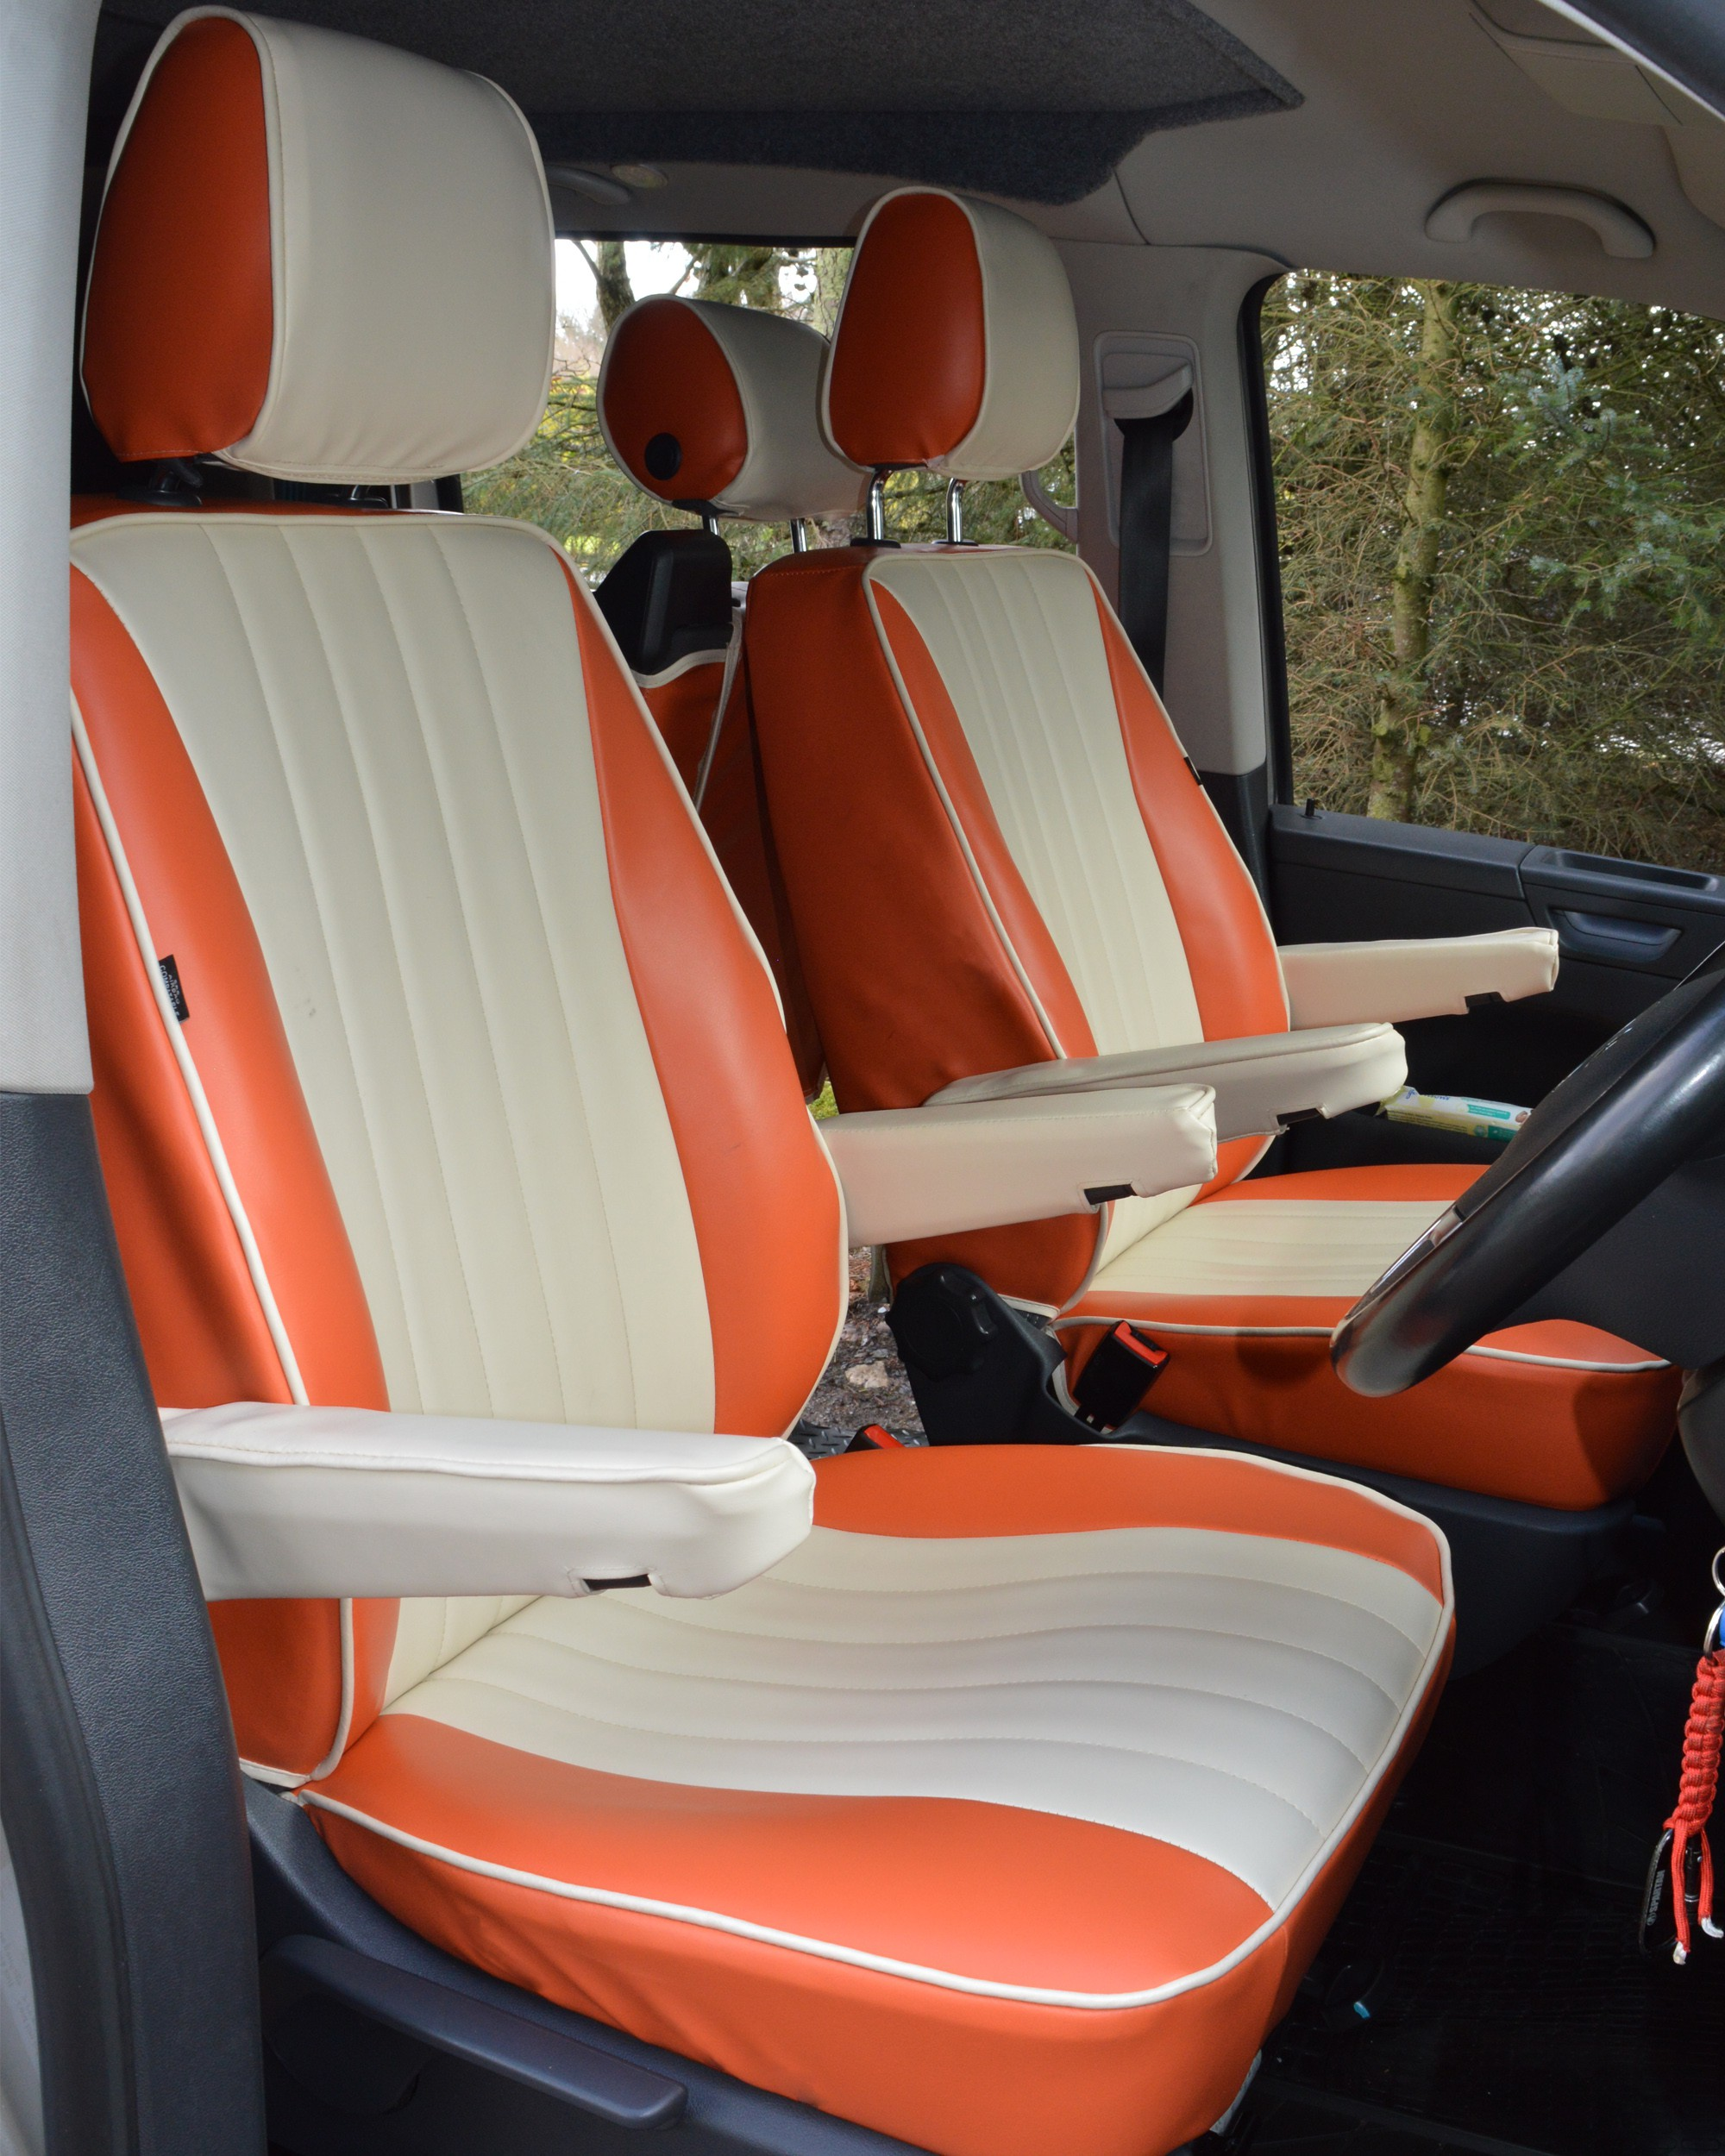 Volkswagen T6 Caravelle Camper (6 seats) Orange & Cream